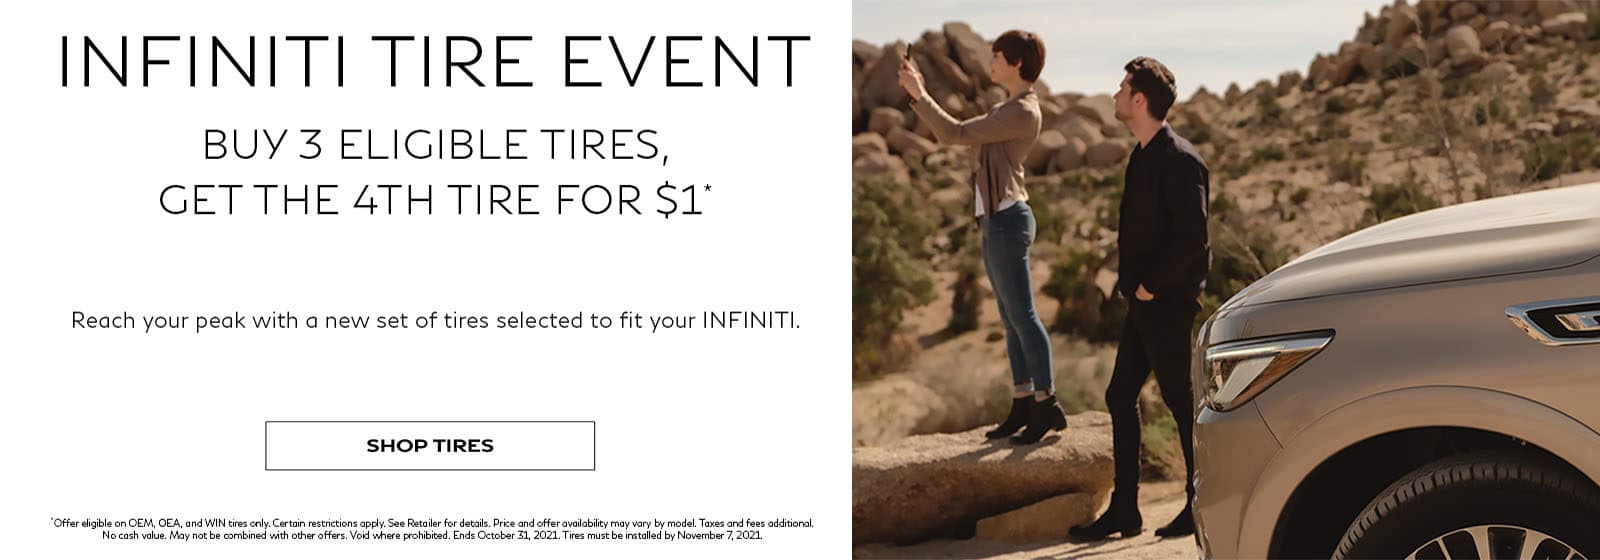 2021 August Tire Offer INFINITI Buy 3 Get 1 for $1